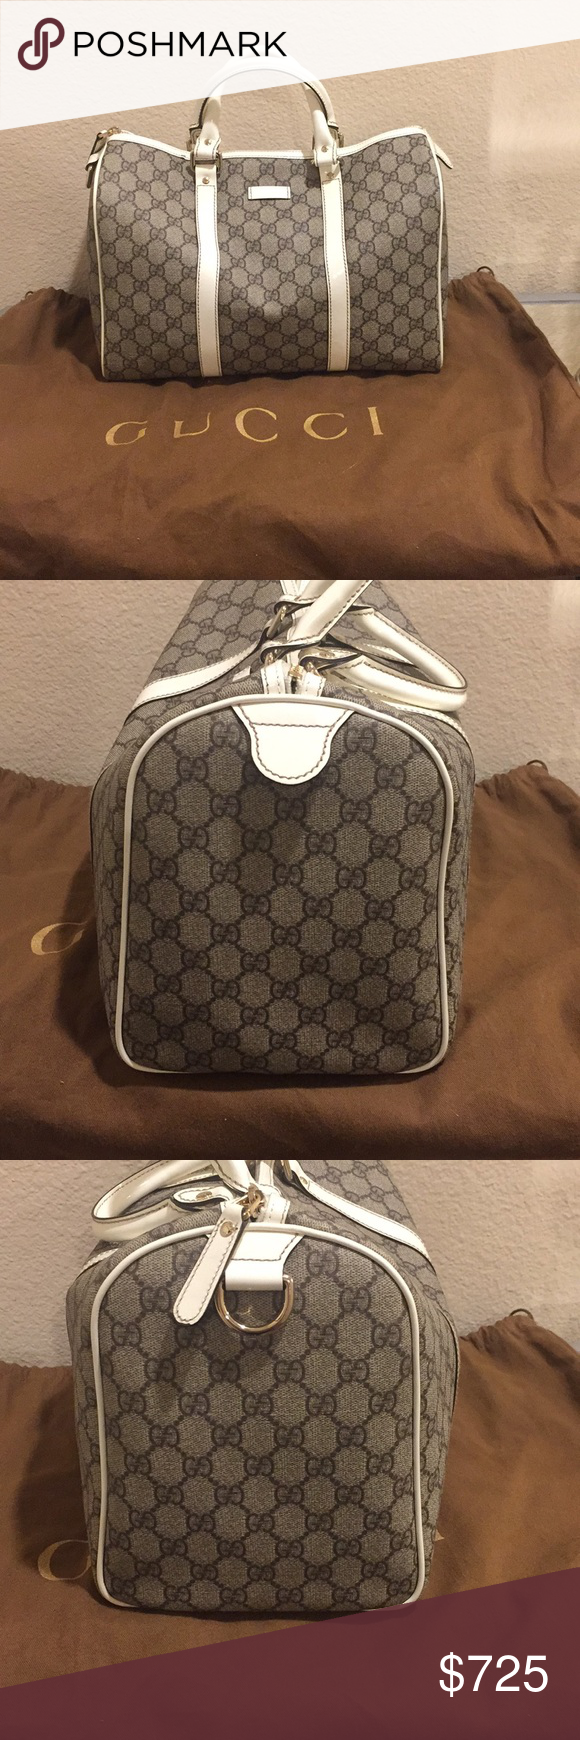 4be5d4c4b Authentic Gucci GG Plus Monogram Joy Boston Bag Gucci GG monogram brown on  beige coated canvas